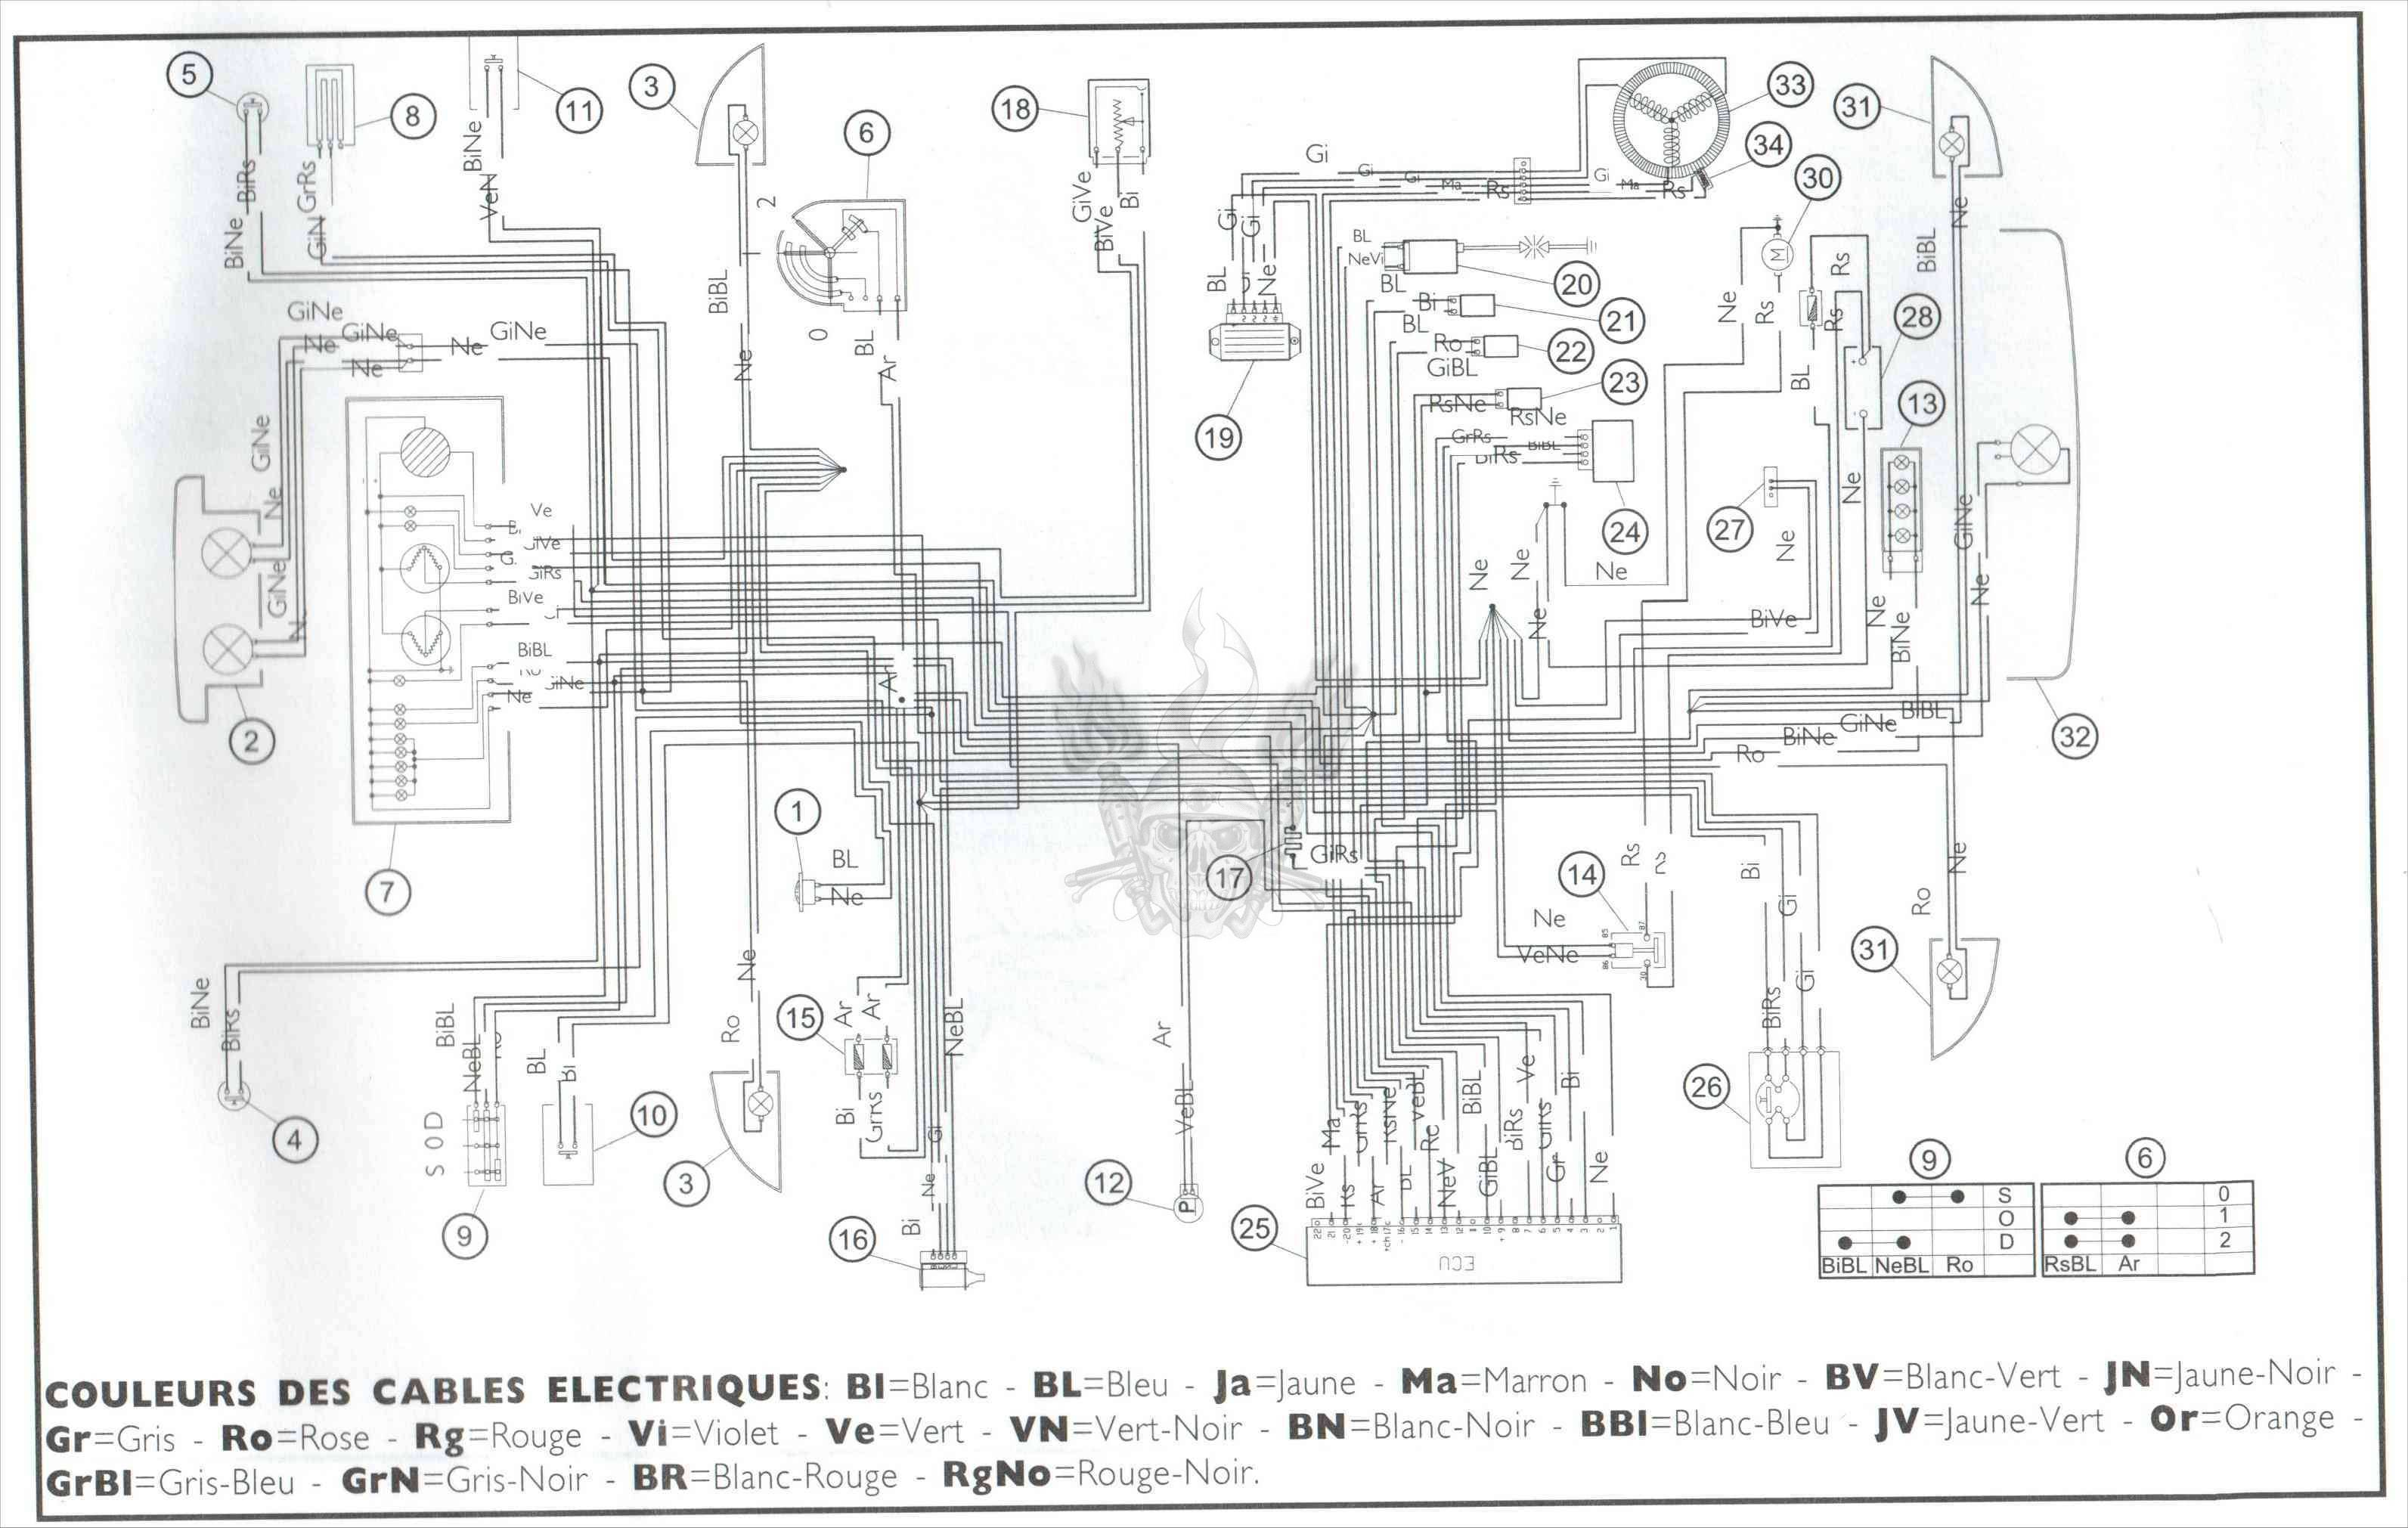 Alpha Sports Atv Wiring Diagram together with Polaris Sportsman 500 Vin Location in addition Honda Rebel Fuel Tank Diagram besides Polaris Magnum 425 Engine Diagram likewise Jonway Wiring Scooter 150cc Diagram 4 Wheeler. on cf moto wiring diagram